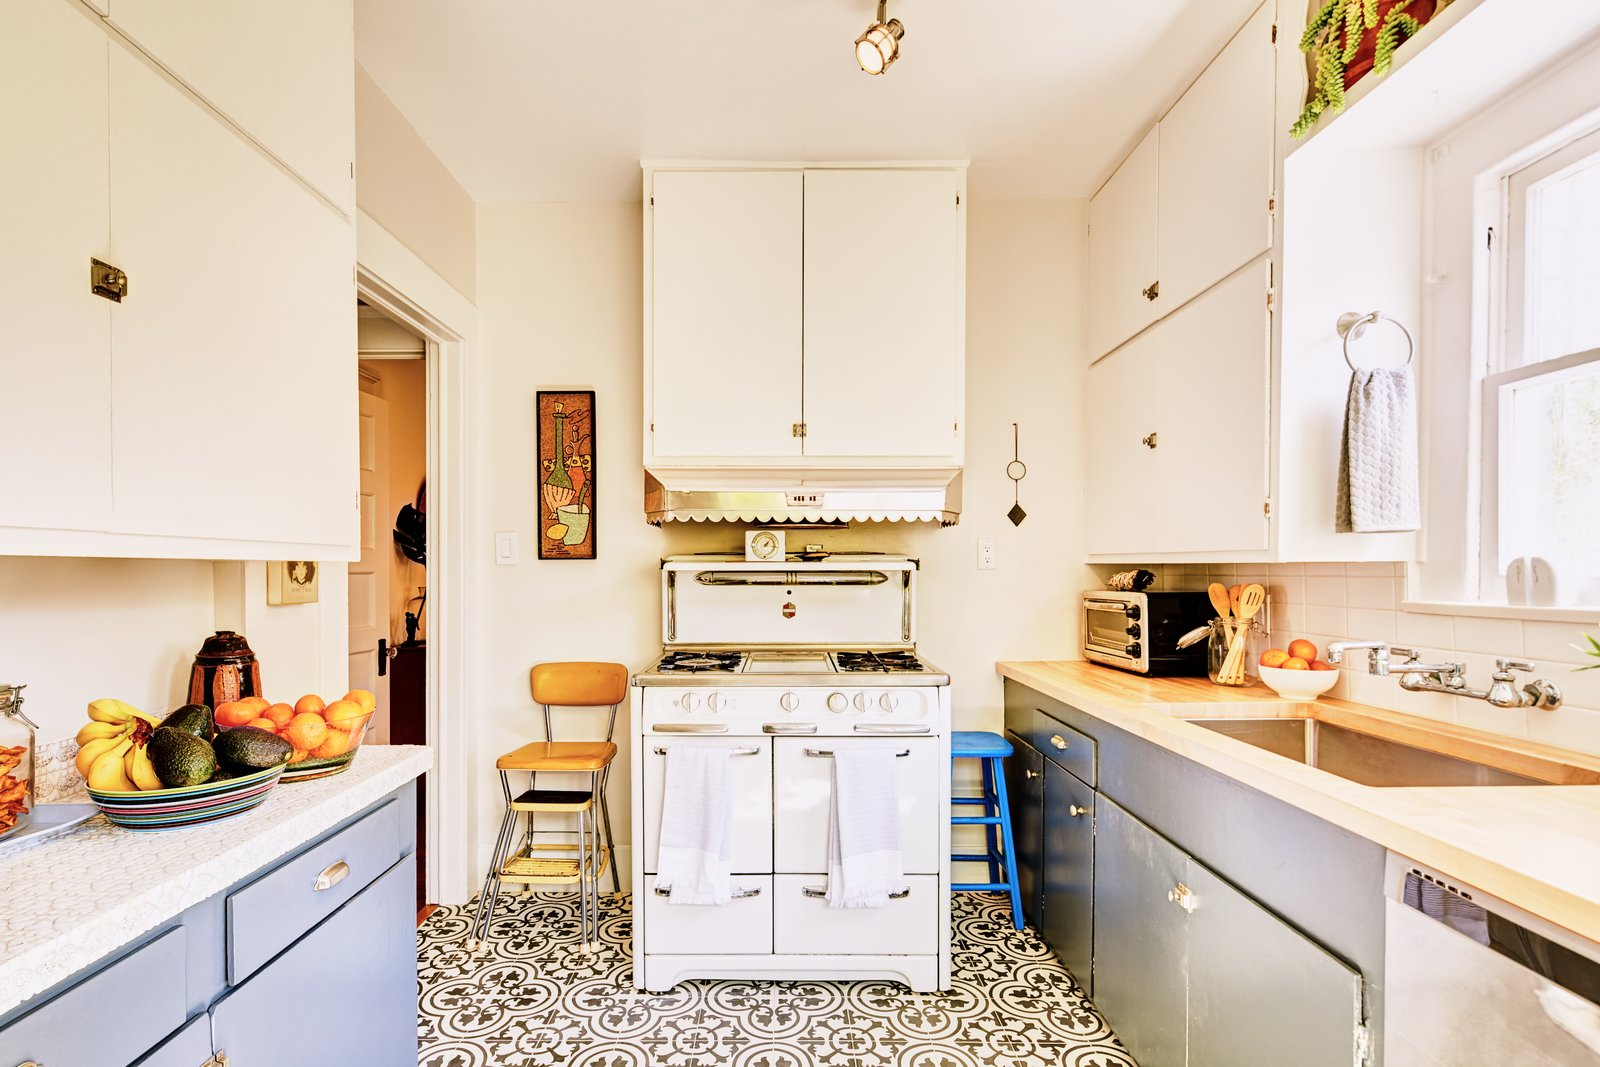 Kitchen, Ceiling, White, Cement Tile, Wood, Dishwasher, Colorful, Subway Tile, and Undermount A charming kitchen features graphic floor tiles and is equipped with a vintage Wedgwood stove.    Best Kitchen Subway Tile Colorful Photos from An Original Venice Craftsman With a Primetime Pedigree Is Listed For $2.75M